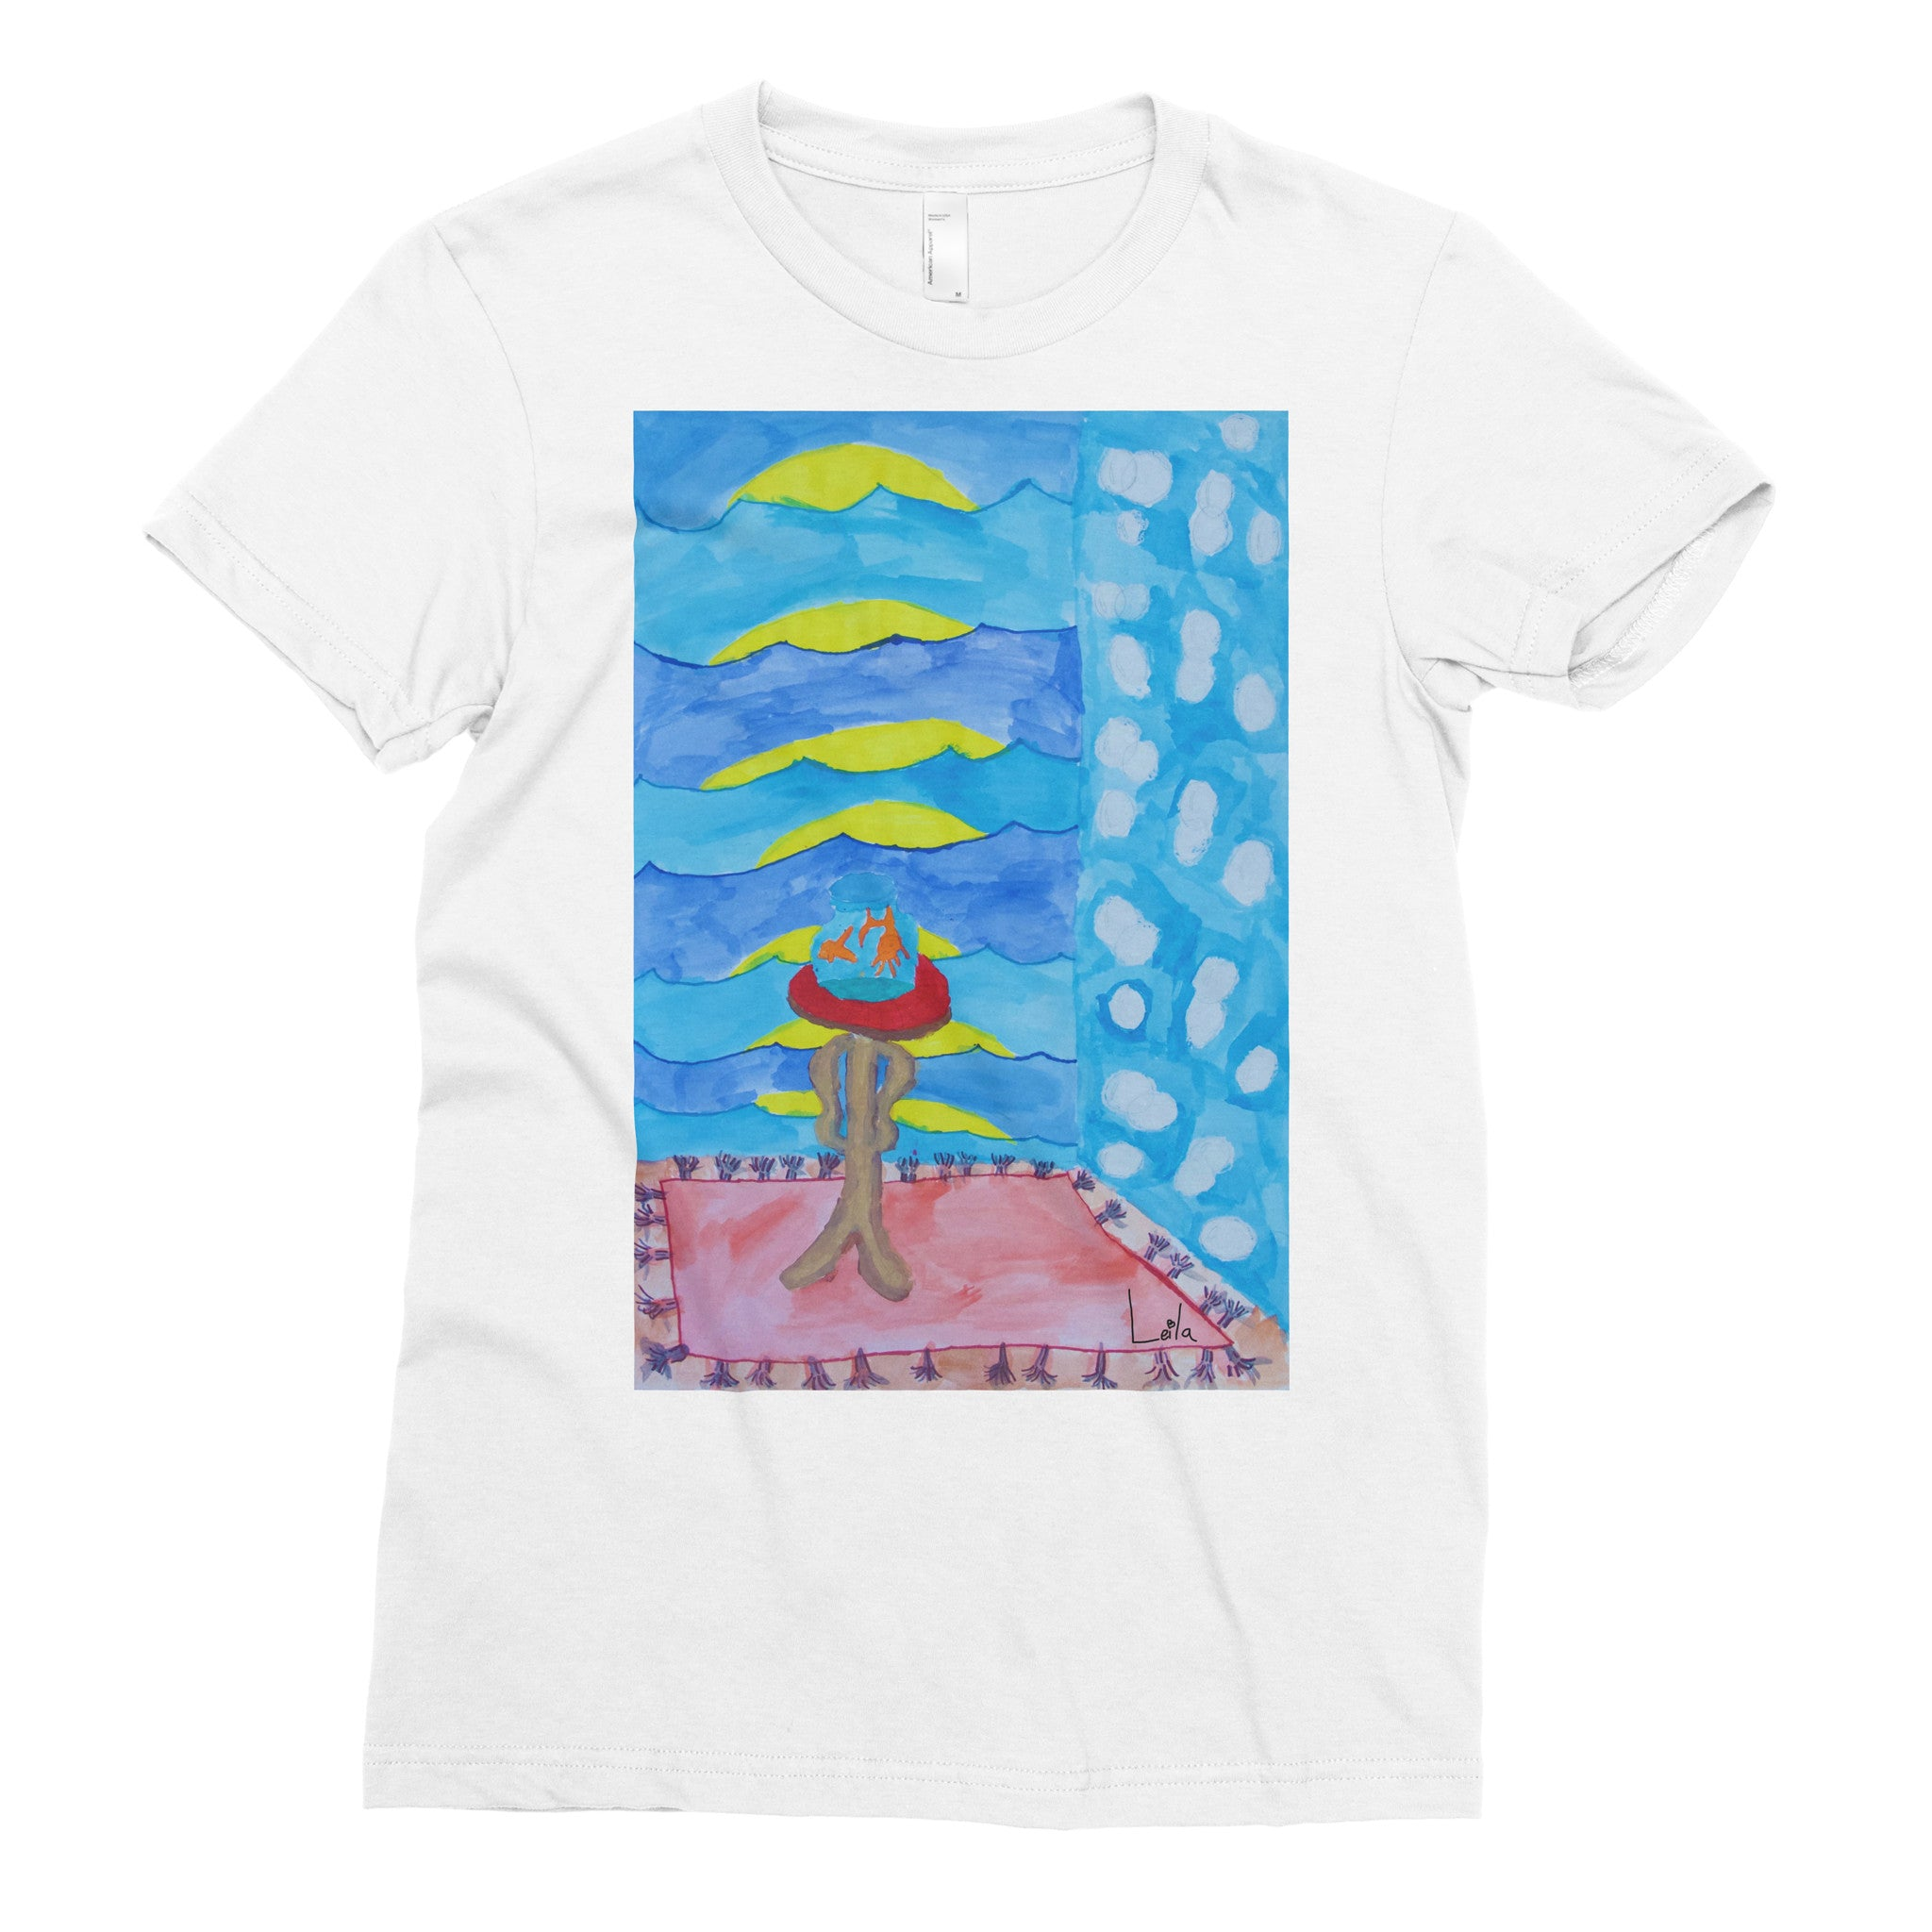 Leila, 2nd grade - Adult T-shirt - Rightside Shirts